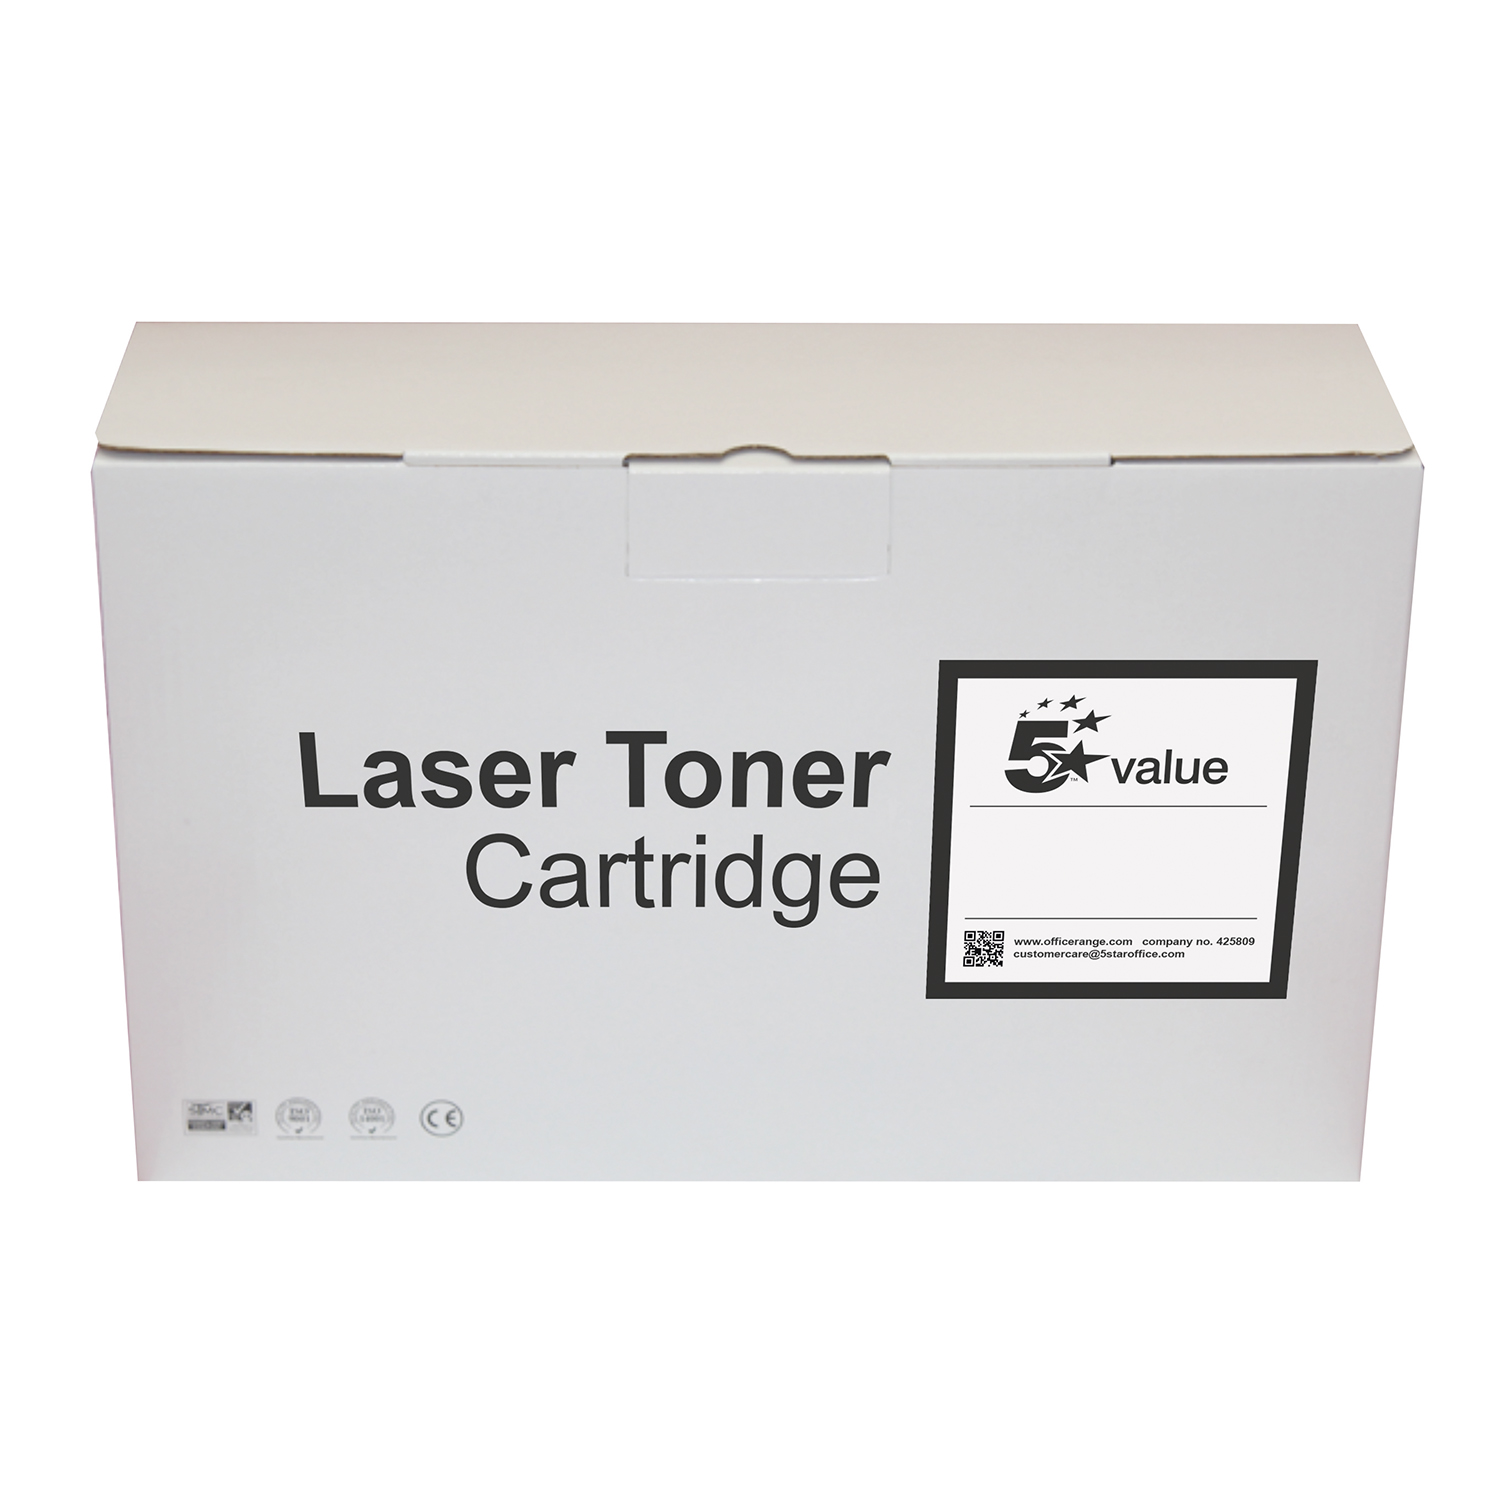 Laser Toner Cartridges 5 Star Value Remanufactured Laser Drum Page Life 25000pp Brother DR3200 Alternative